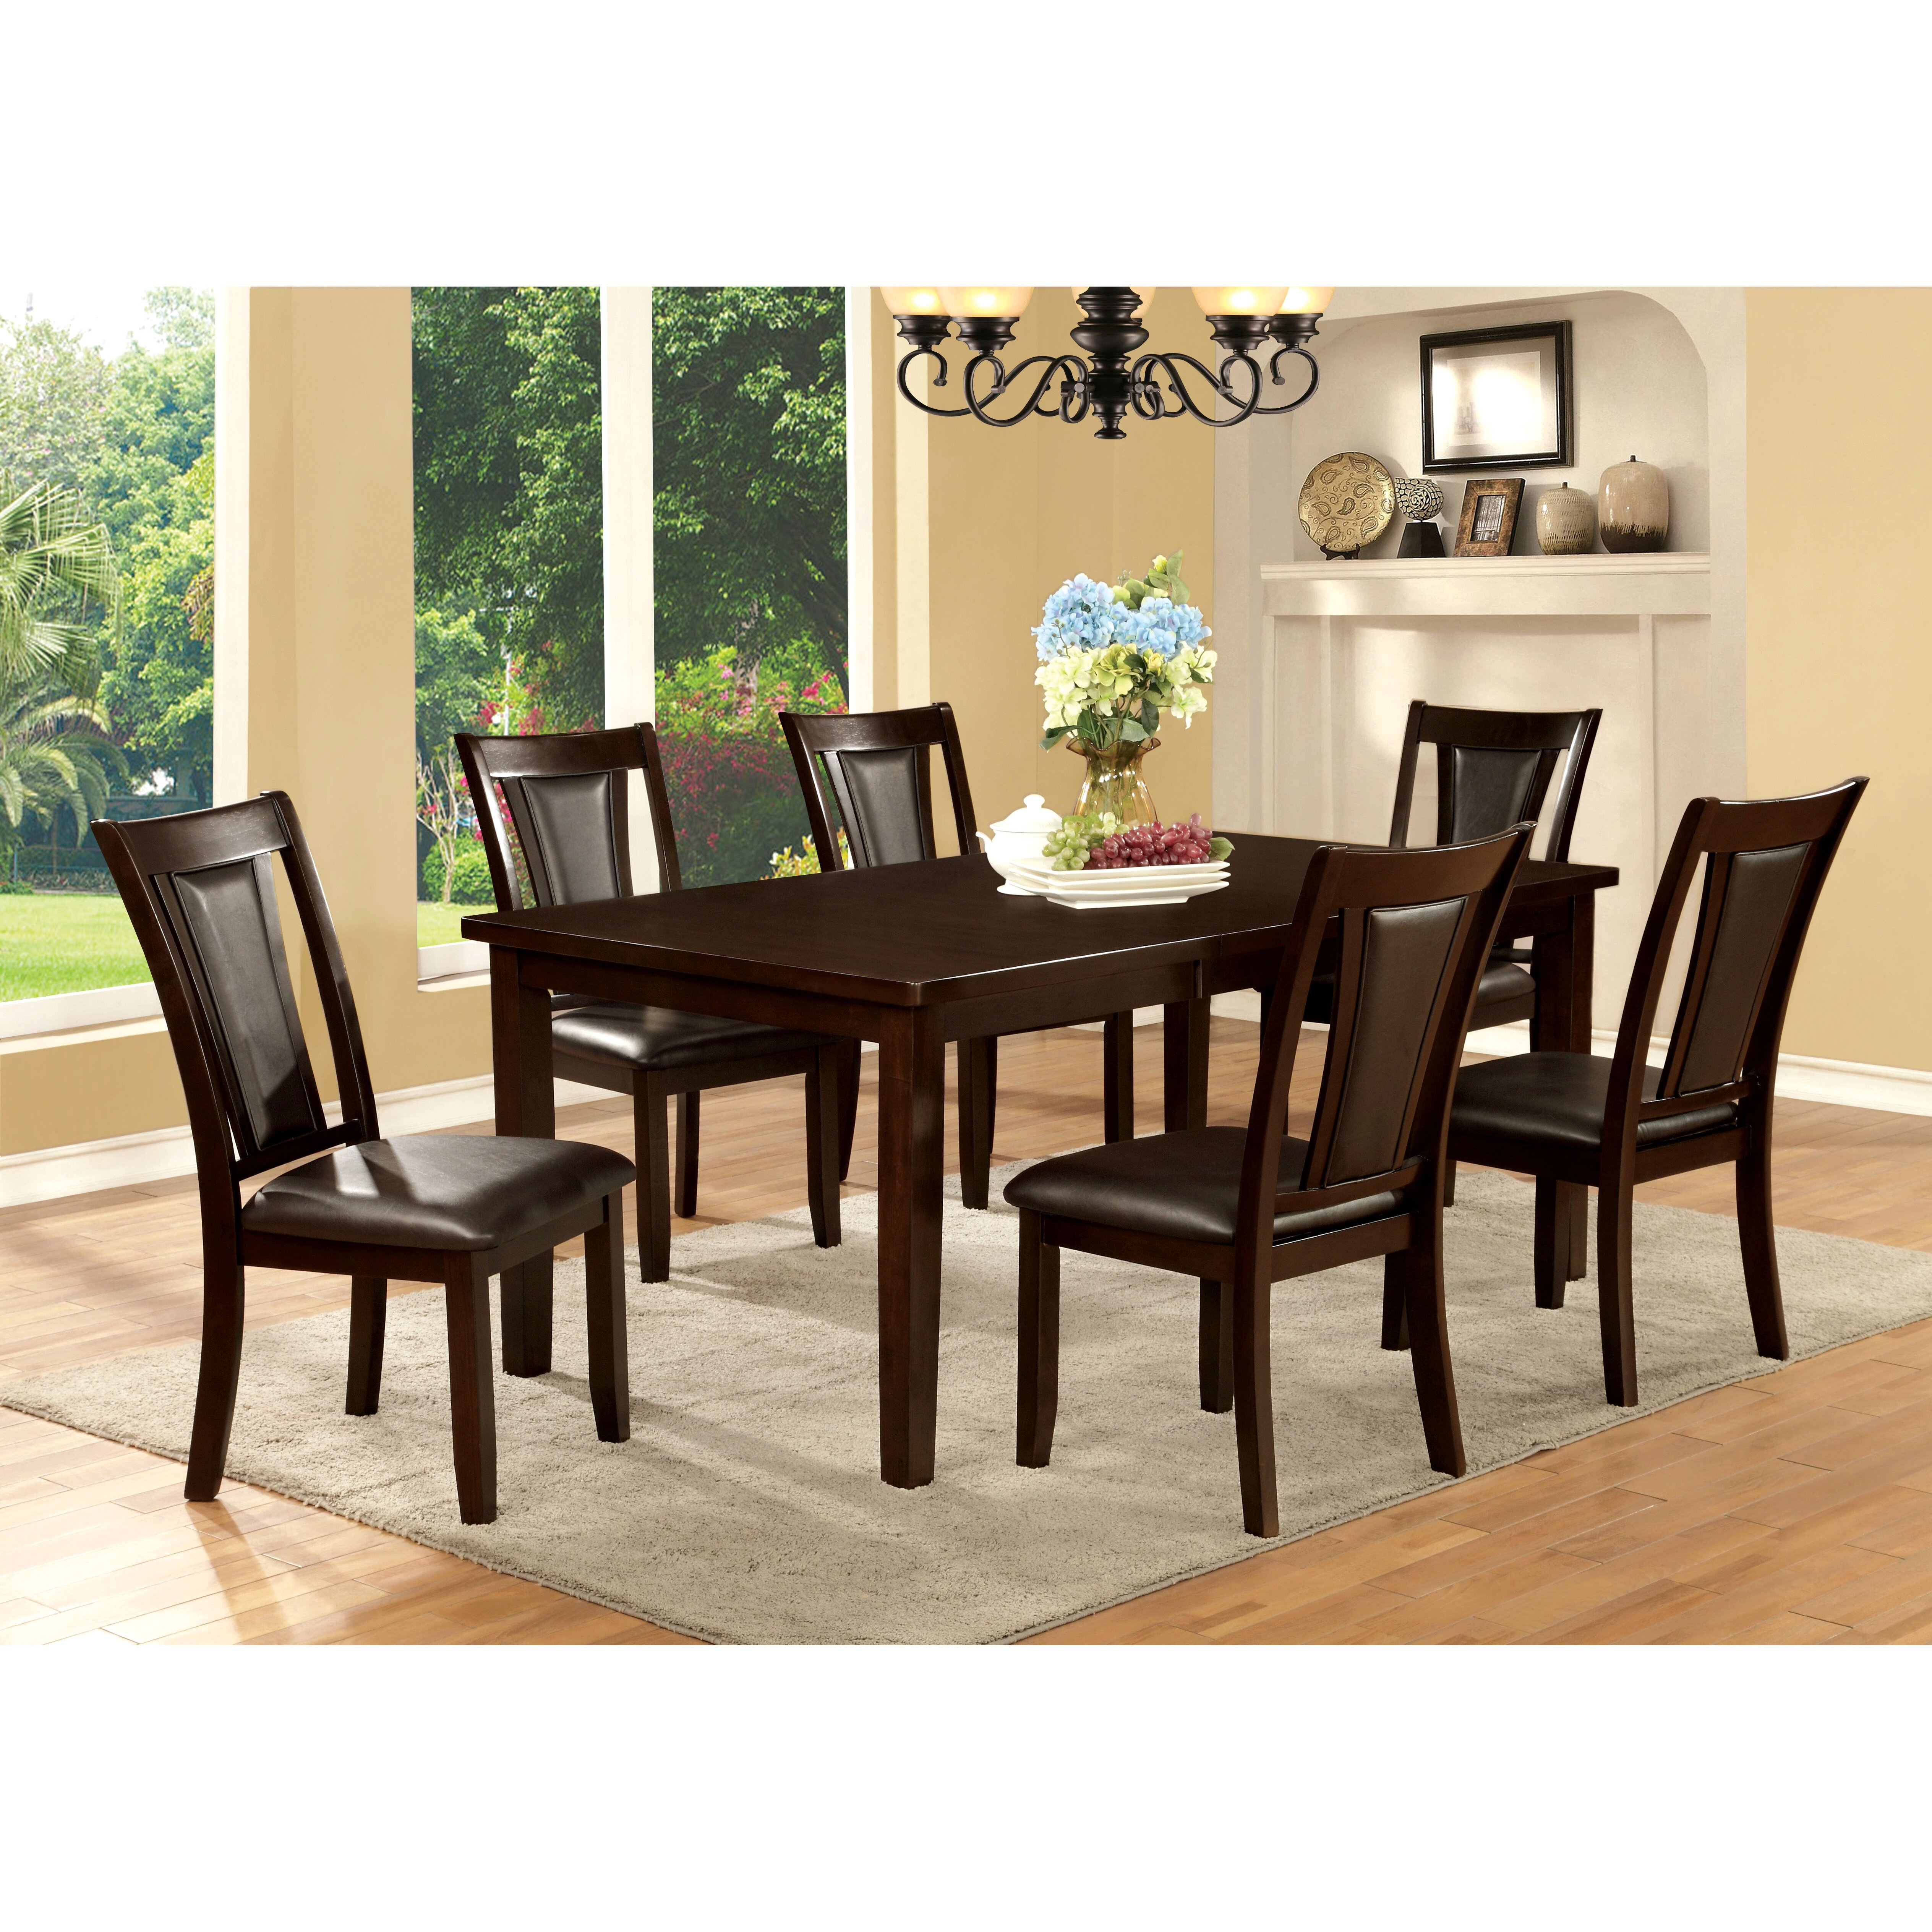 Hokku designs griffith extendable dining table wayfair for Hokku designs dining room furniture